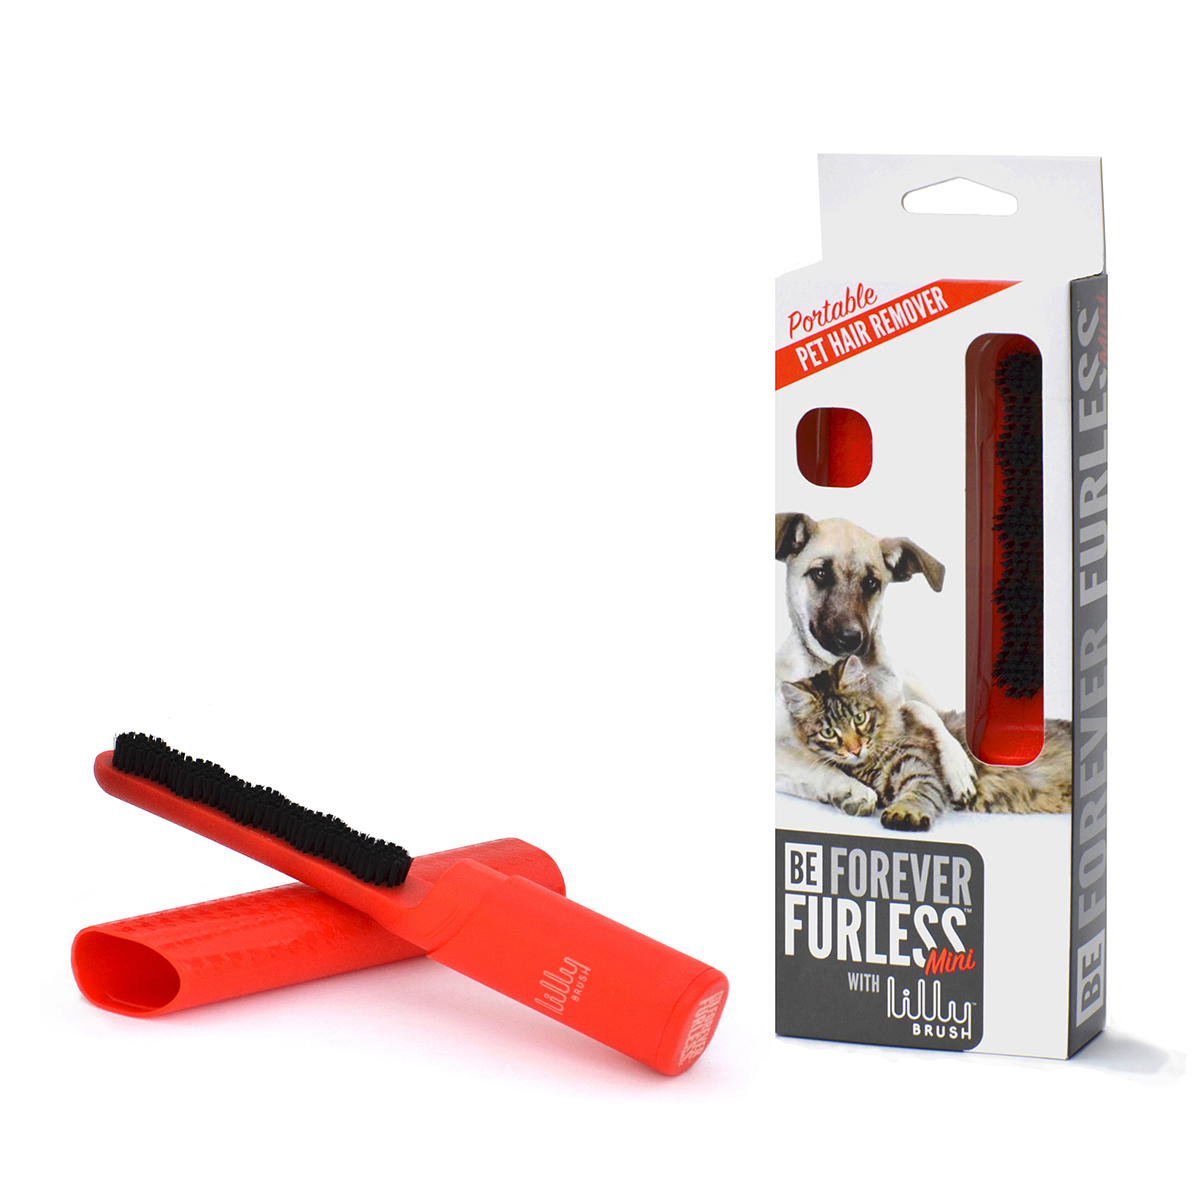 Lilly Brush Pet Hair Remover - Red